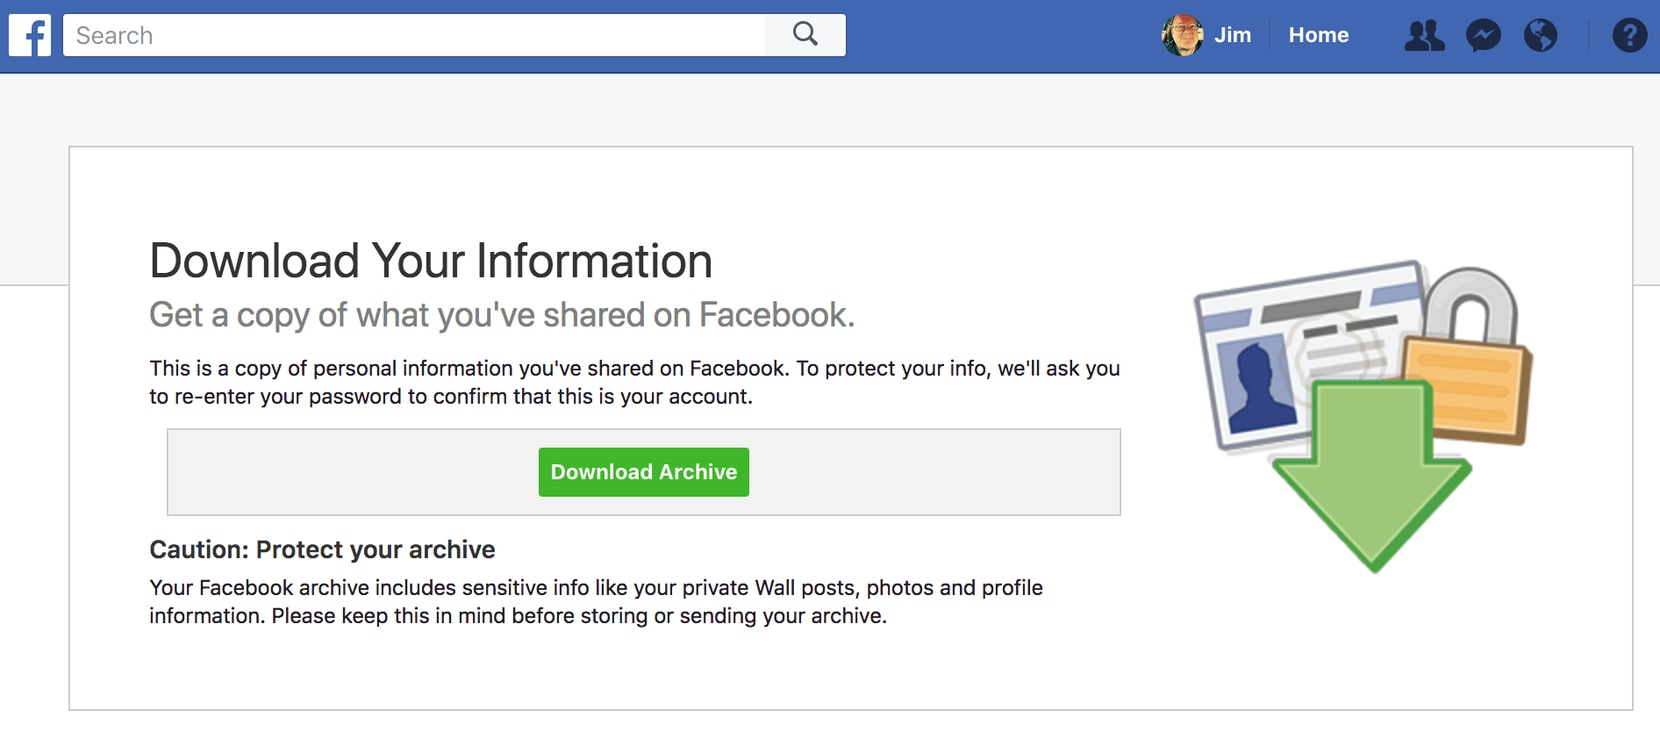 You can ask Facebook to send you a copy of all the data they have about you.